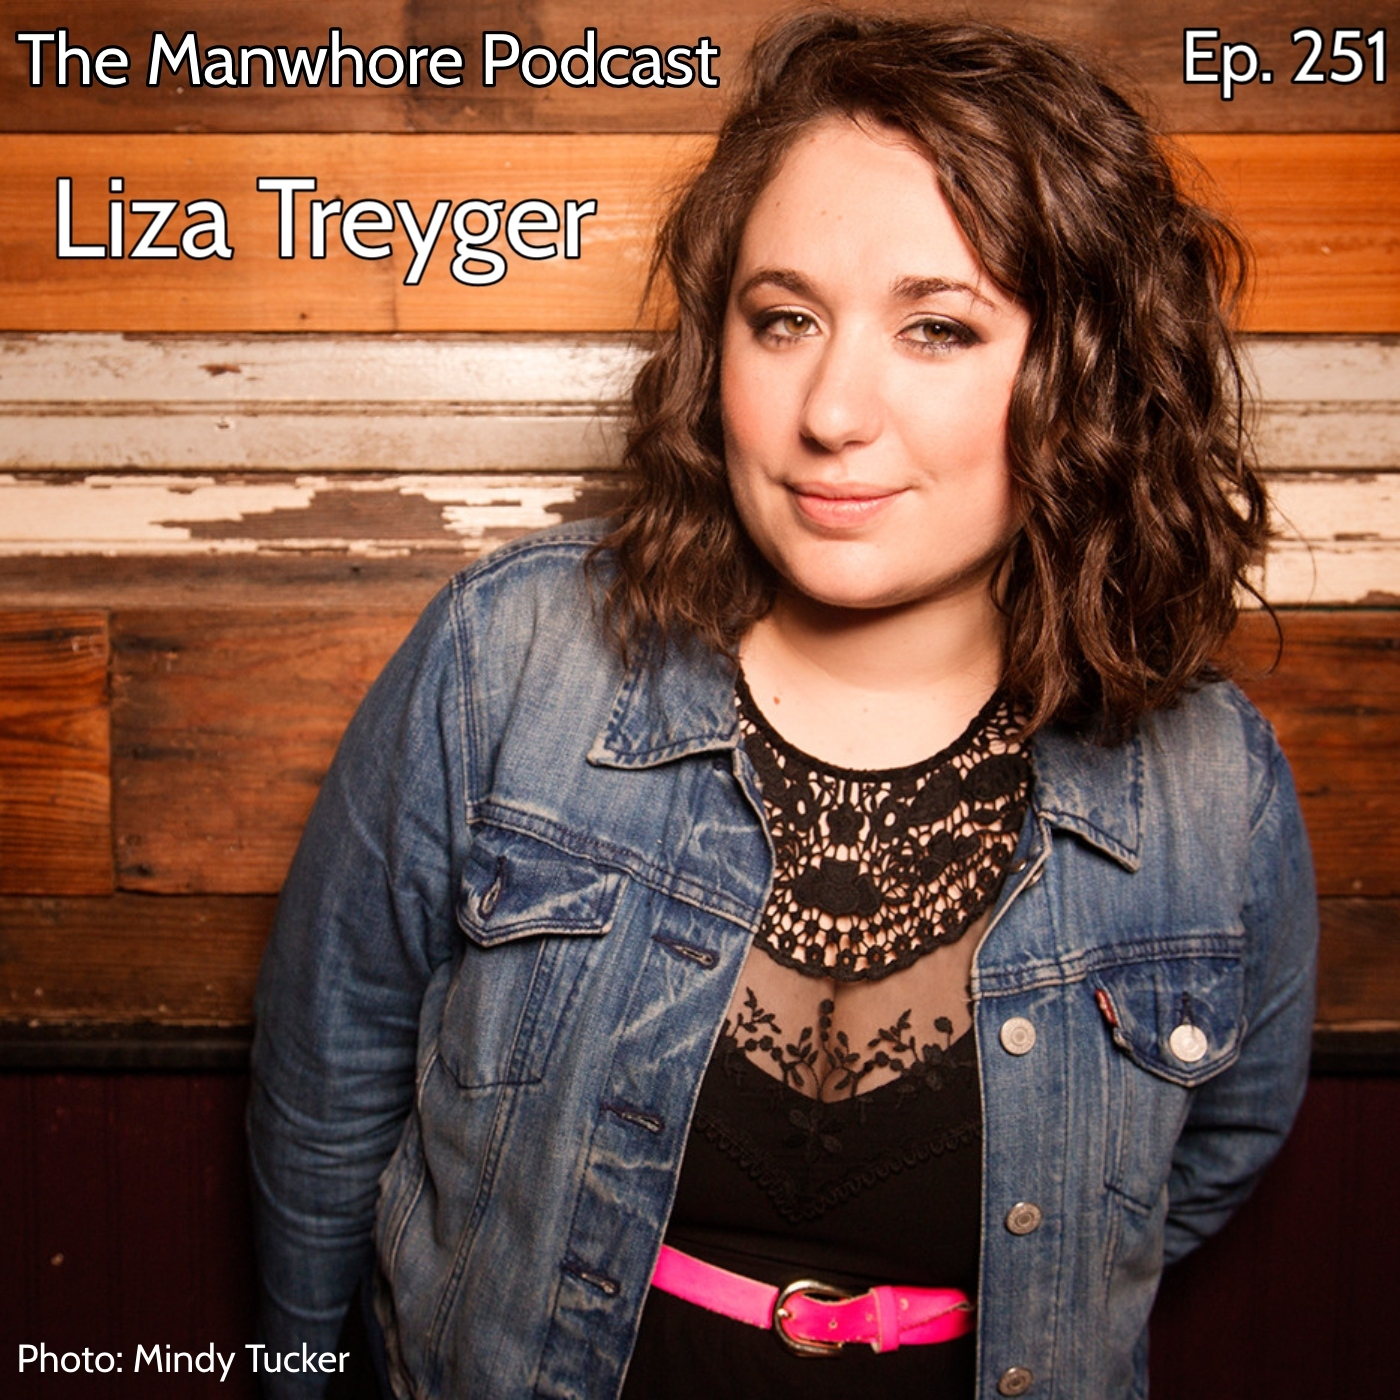 The Manwhore Podcast: A Sex-Positive Quest - Ep. 251: How to Organize a G*ngb*ng with Liza Treyger